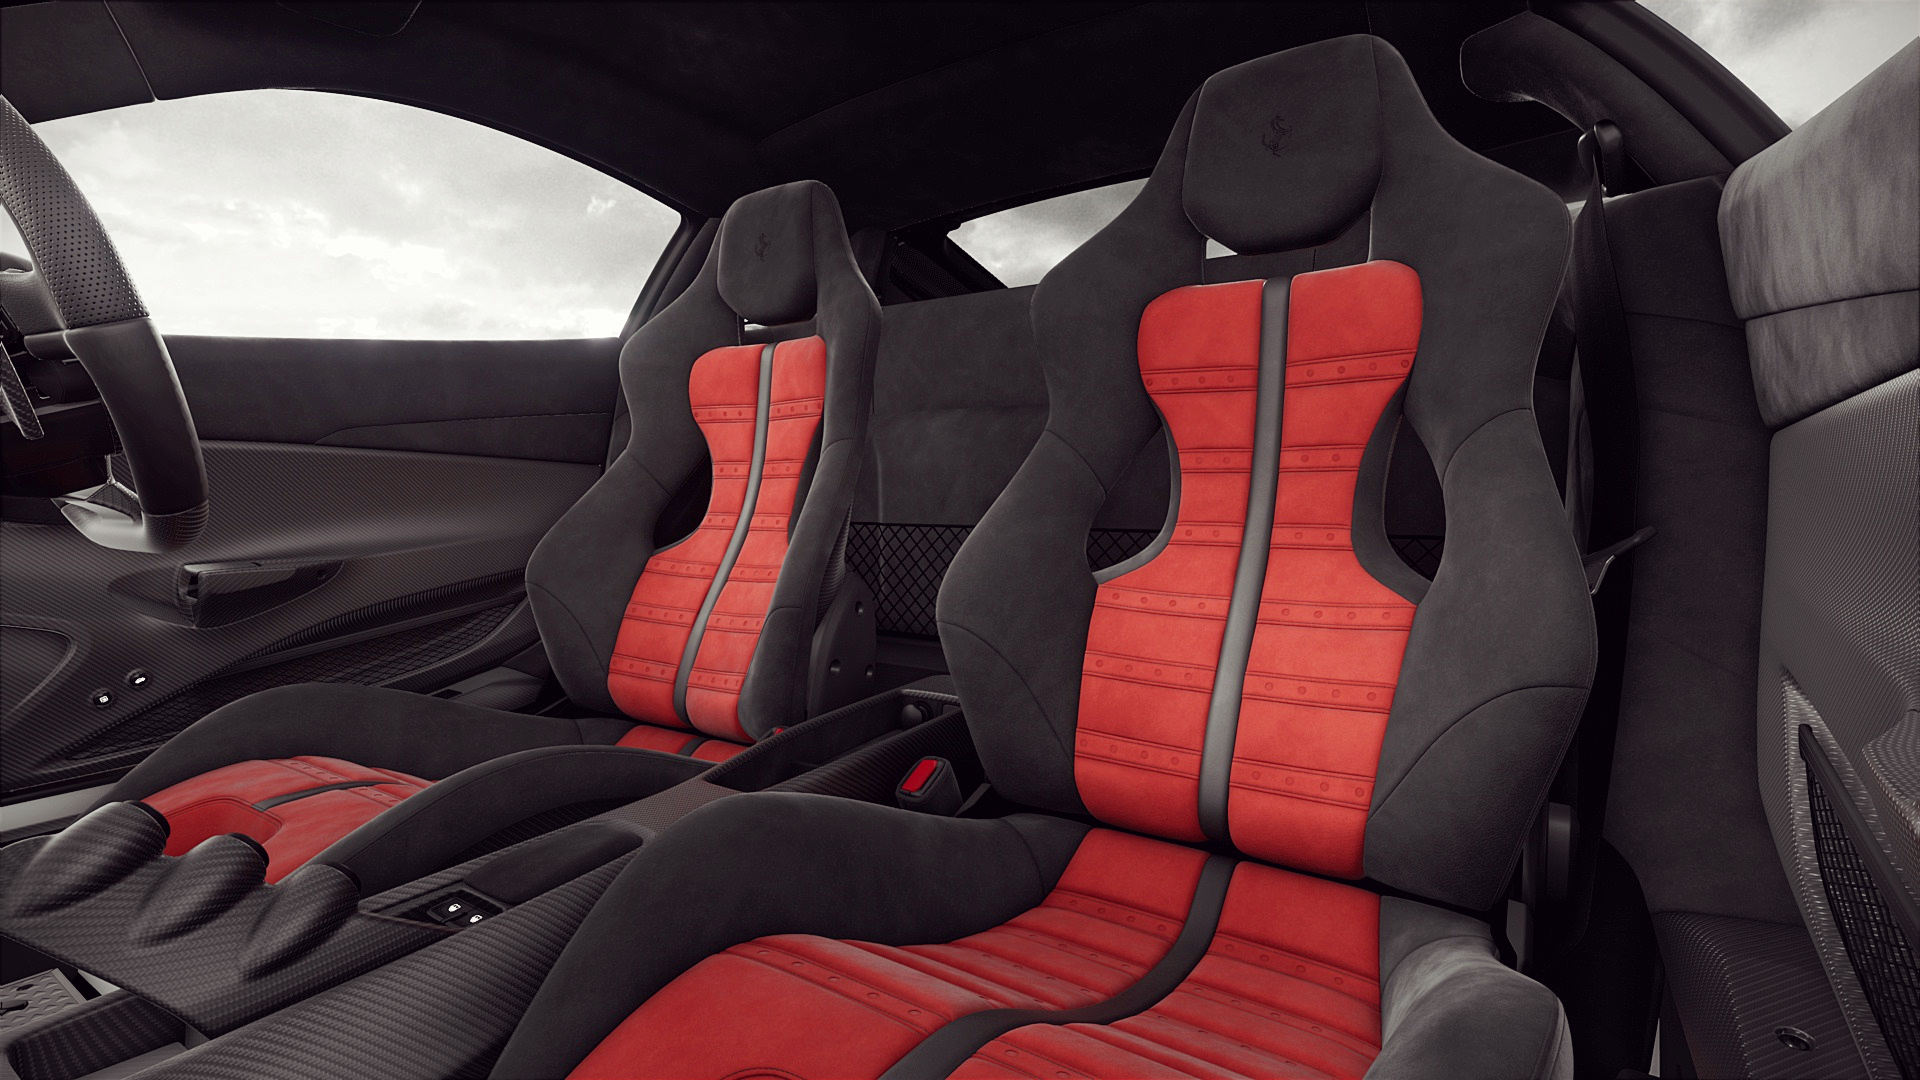 Ferrari 488 Pista Interior Red Inside Seats Wallpaper